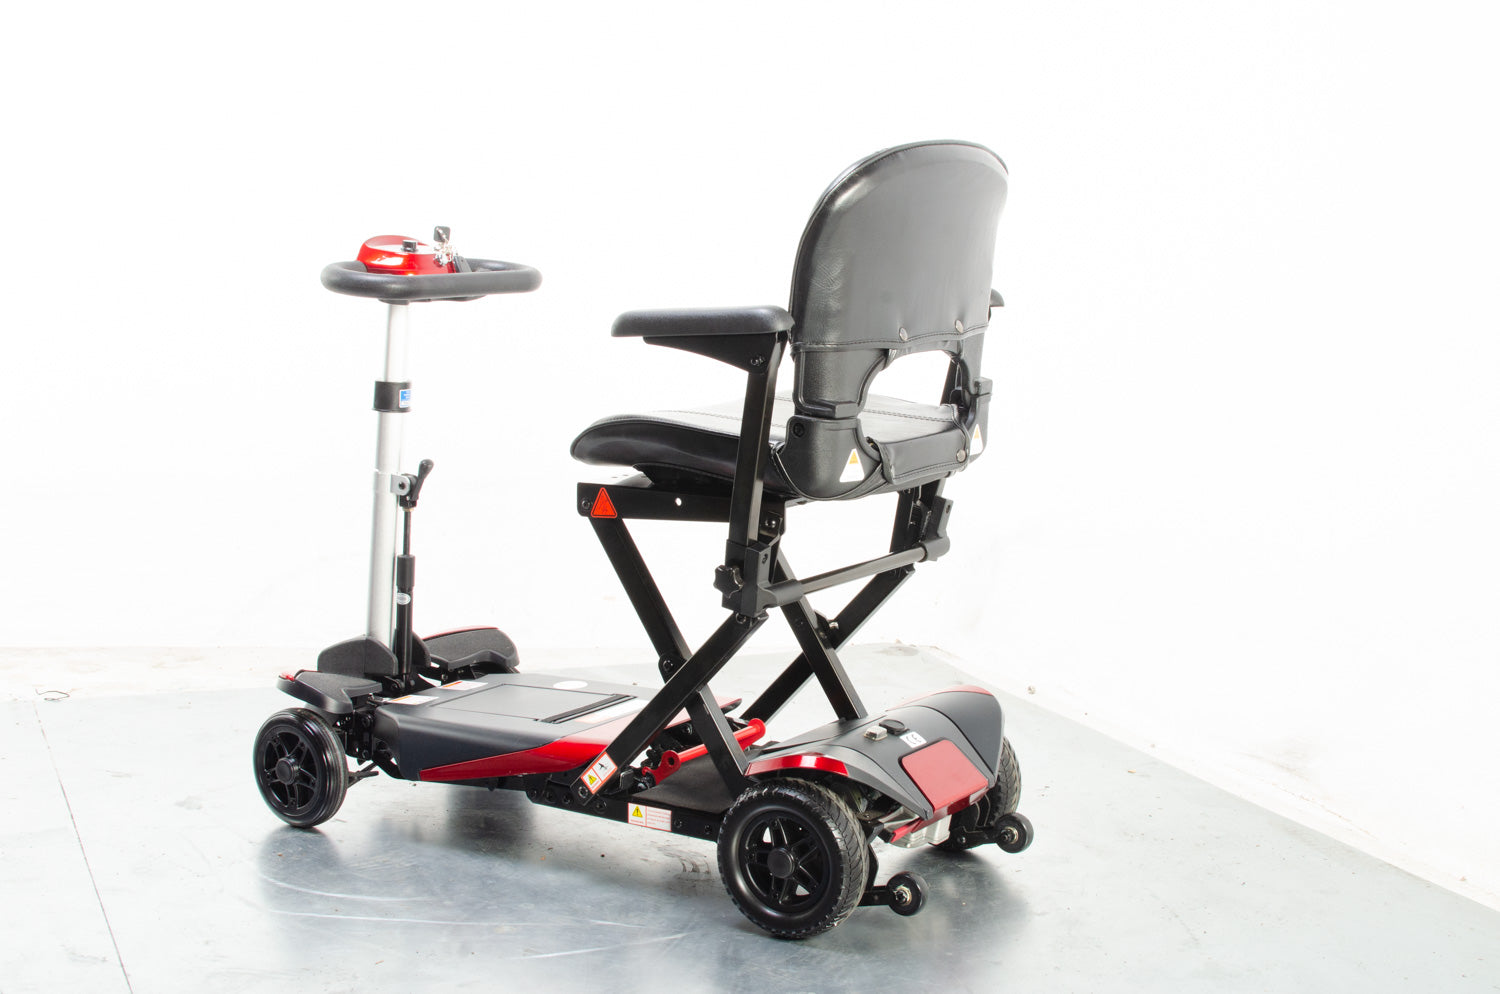 2018 Monarch Smarti 4mph Remote Auto Folding Mobility Scooter in Red